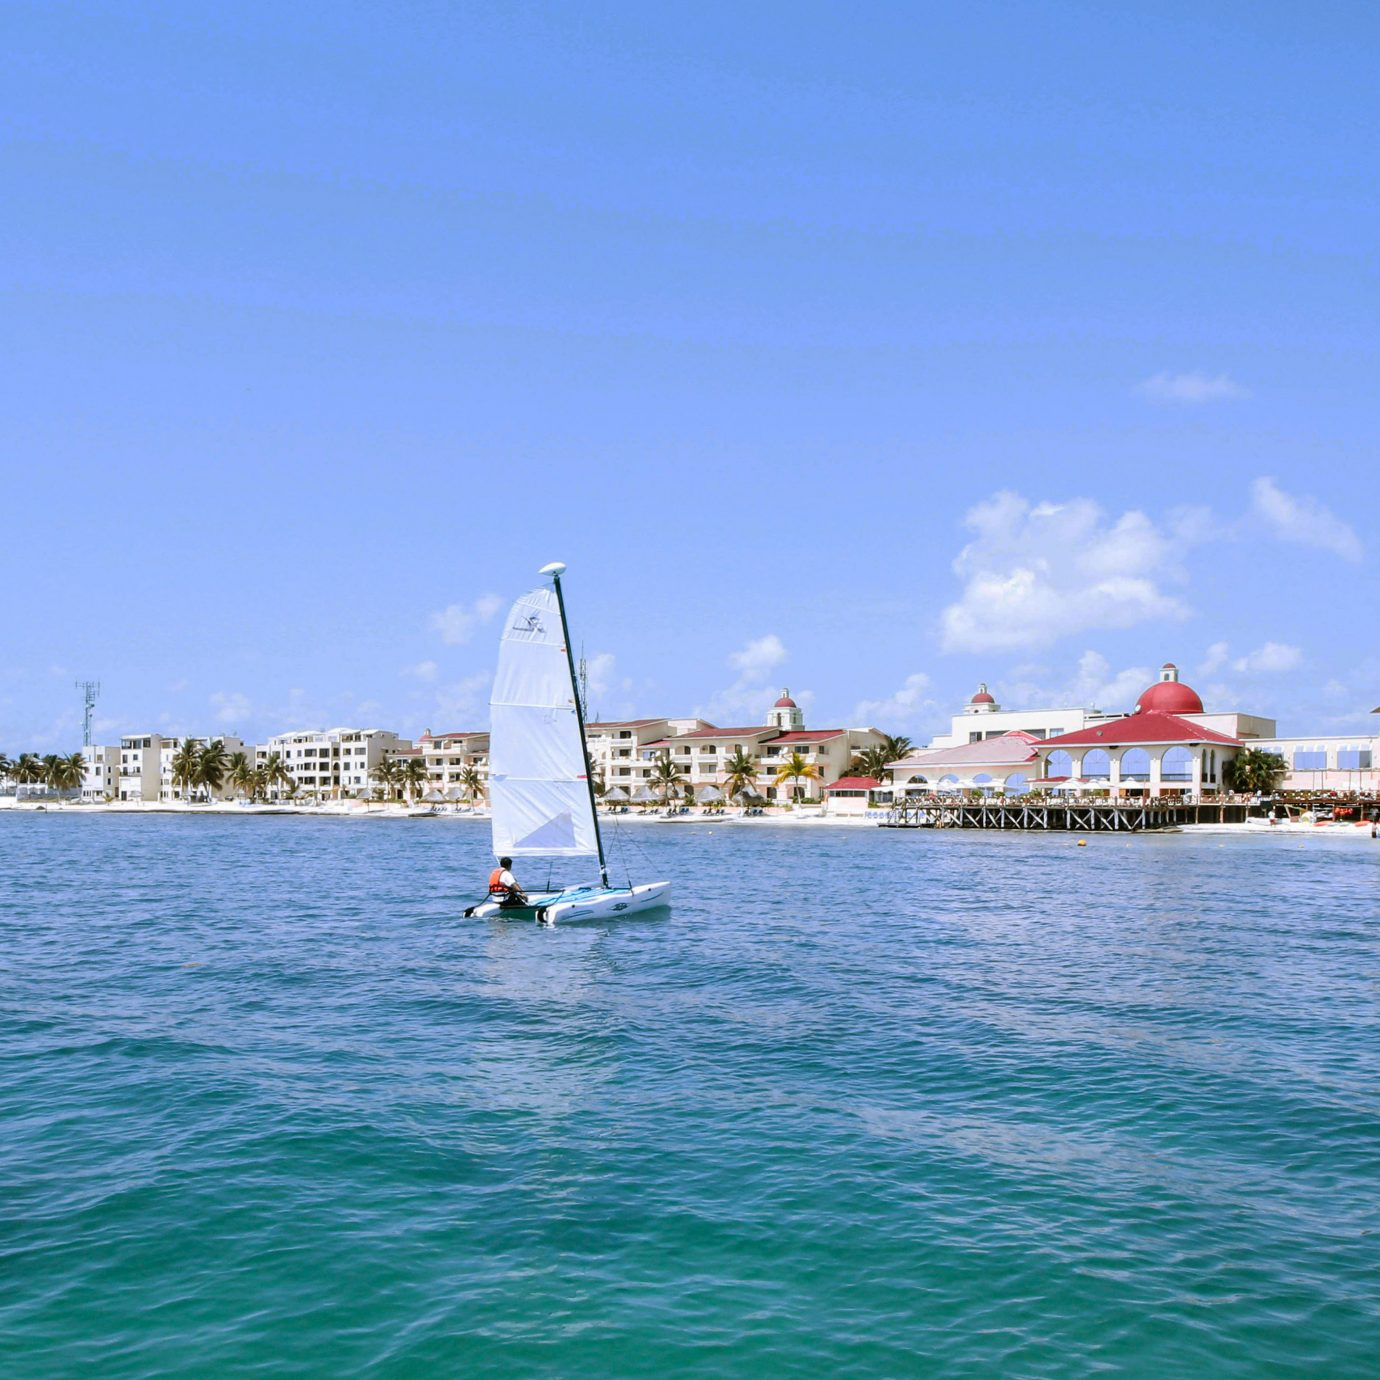 Architecture Beach Boat Exterior Ocean water sky watercraft vehicle transport Sea sailboat sailing vessel channel sail marina sailing boating day distance